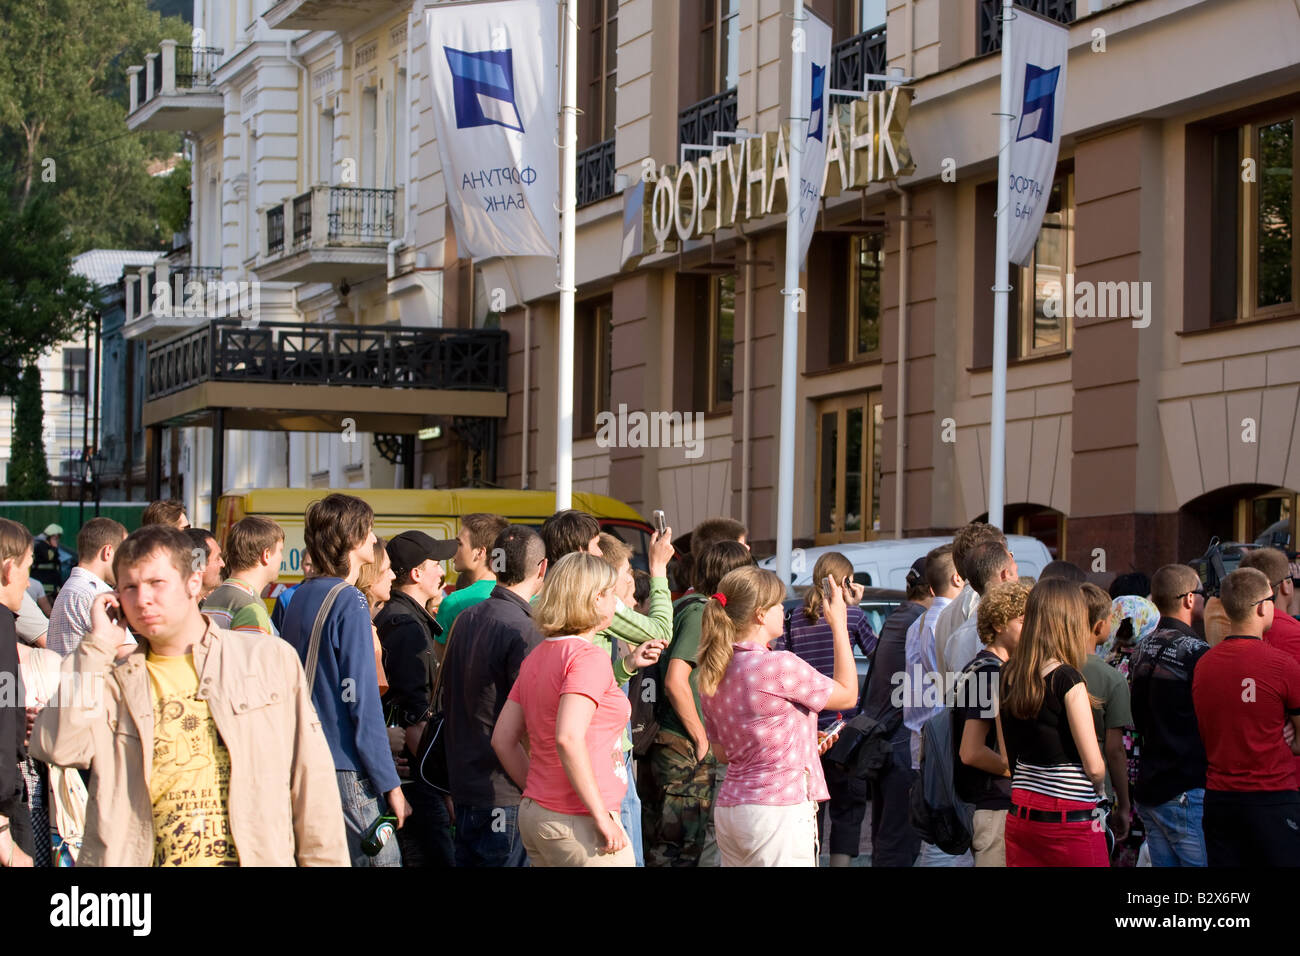 Onlookers on the street - Stock Image